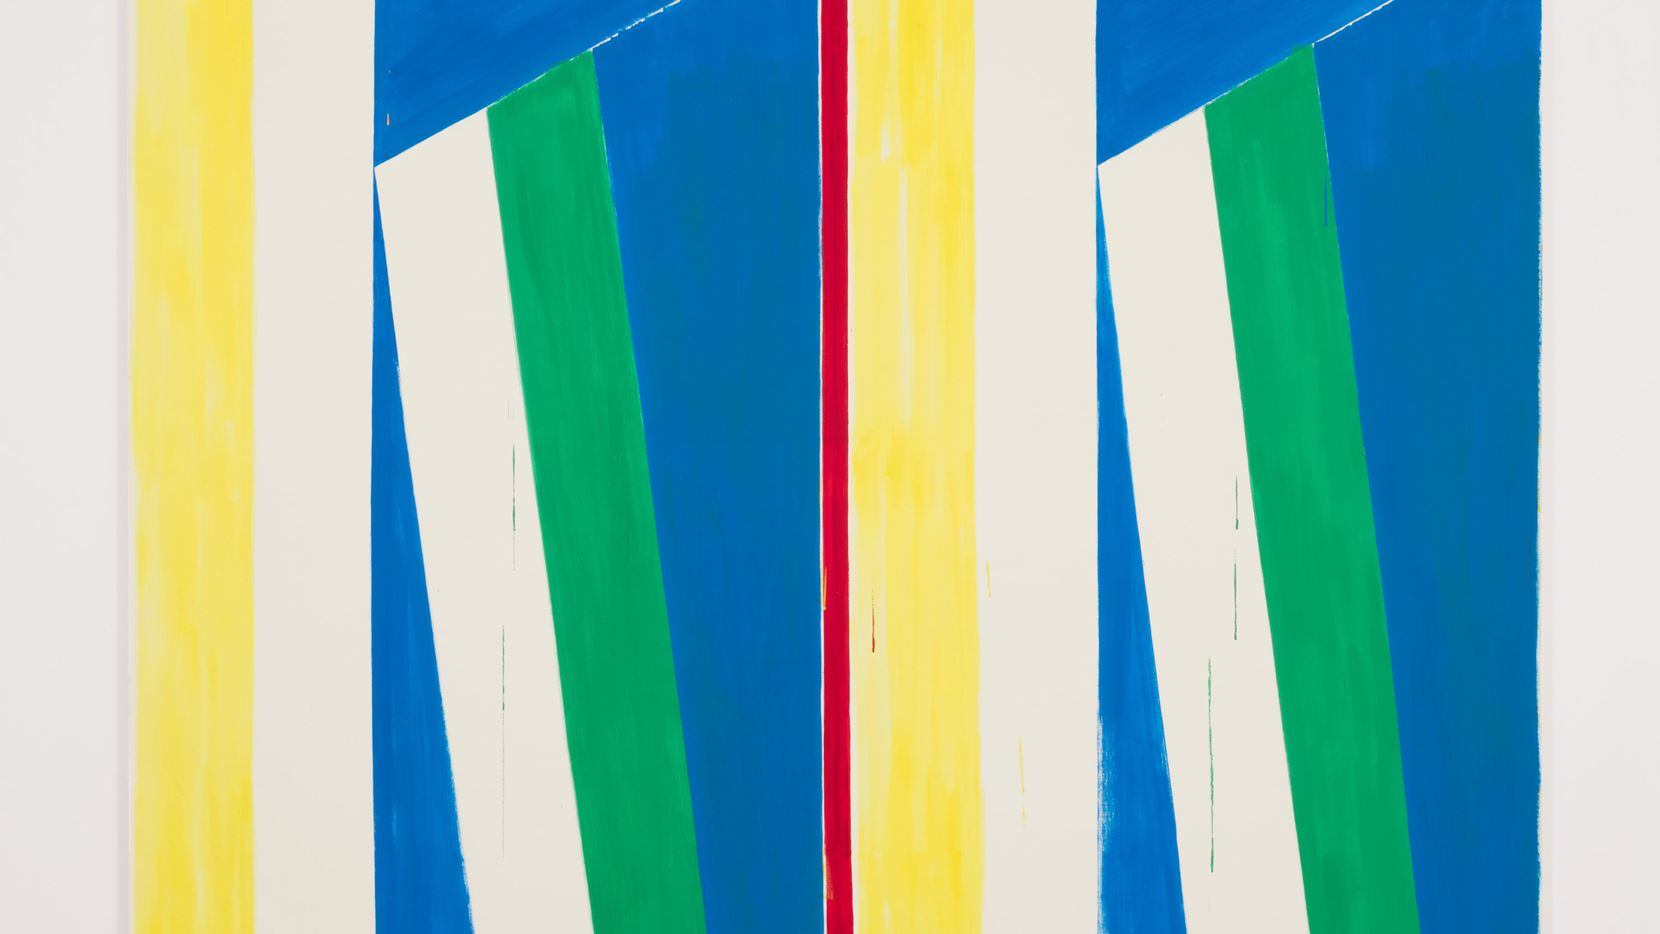 Bernard Piffaretti, Untitled, 2015, acrylic on canvas, 240 x 200 cm.